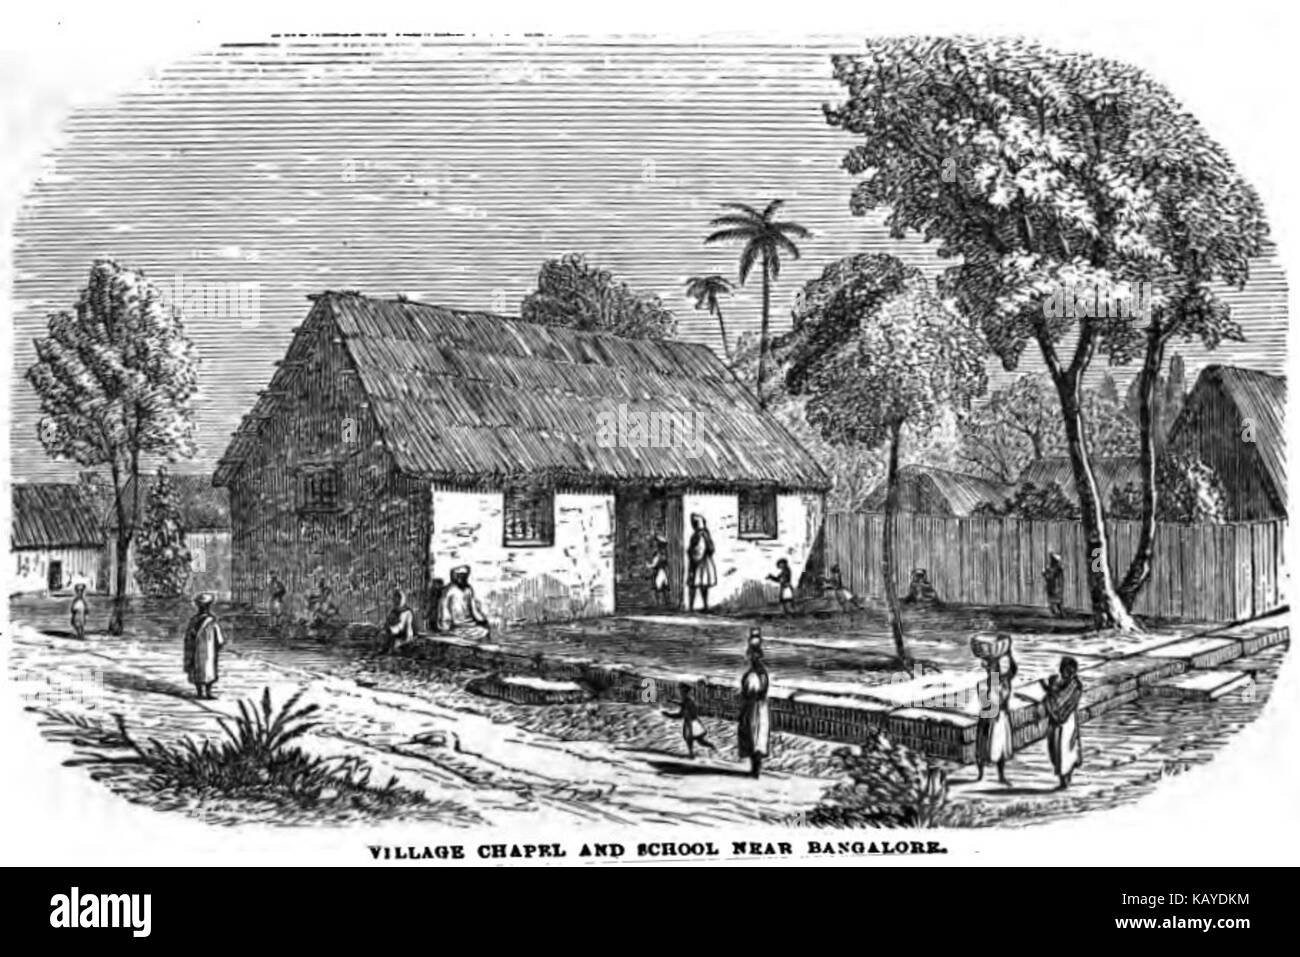 Farmhouse Near Bangalore Village Chapel And School Near Bangalore March 1859 Xvl P 24